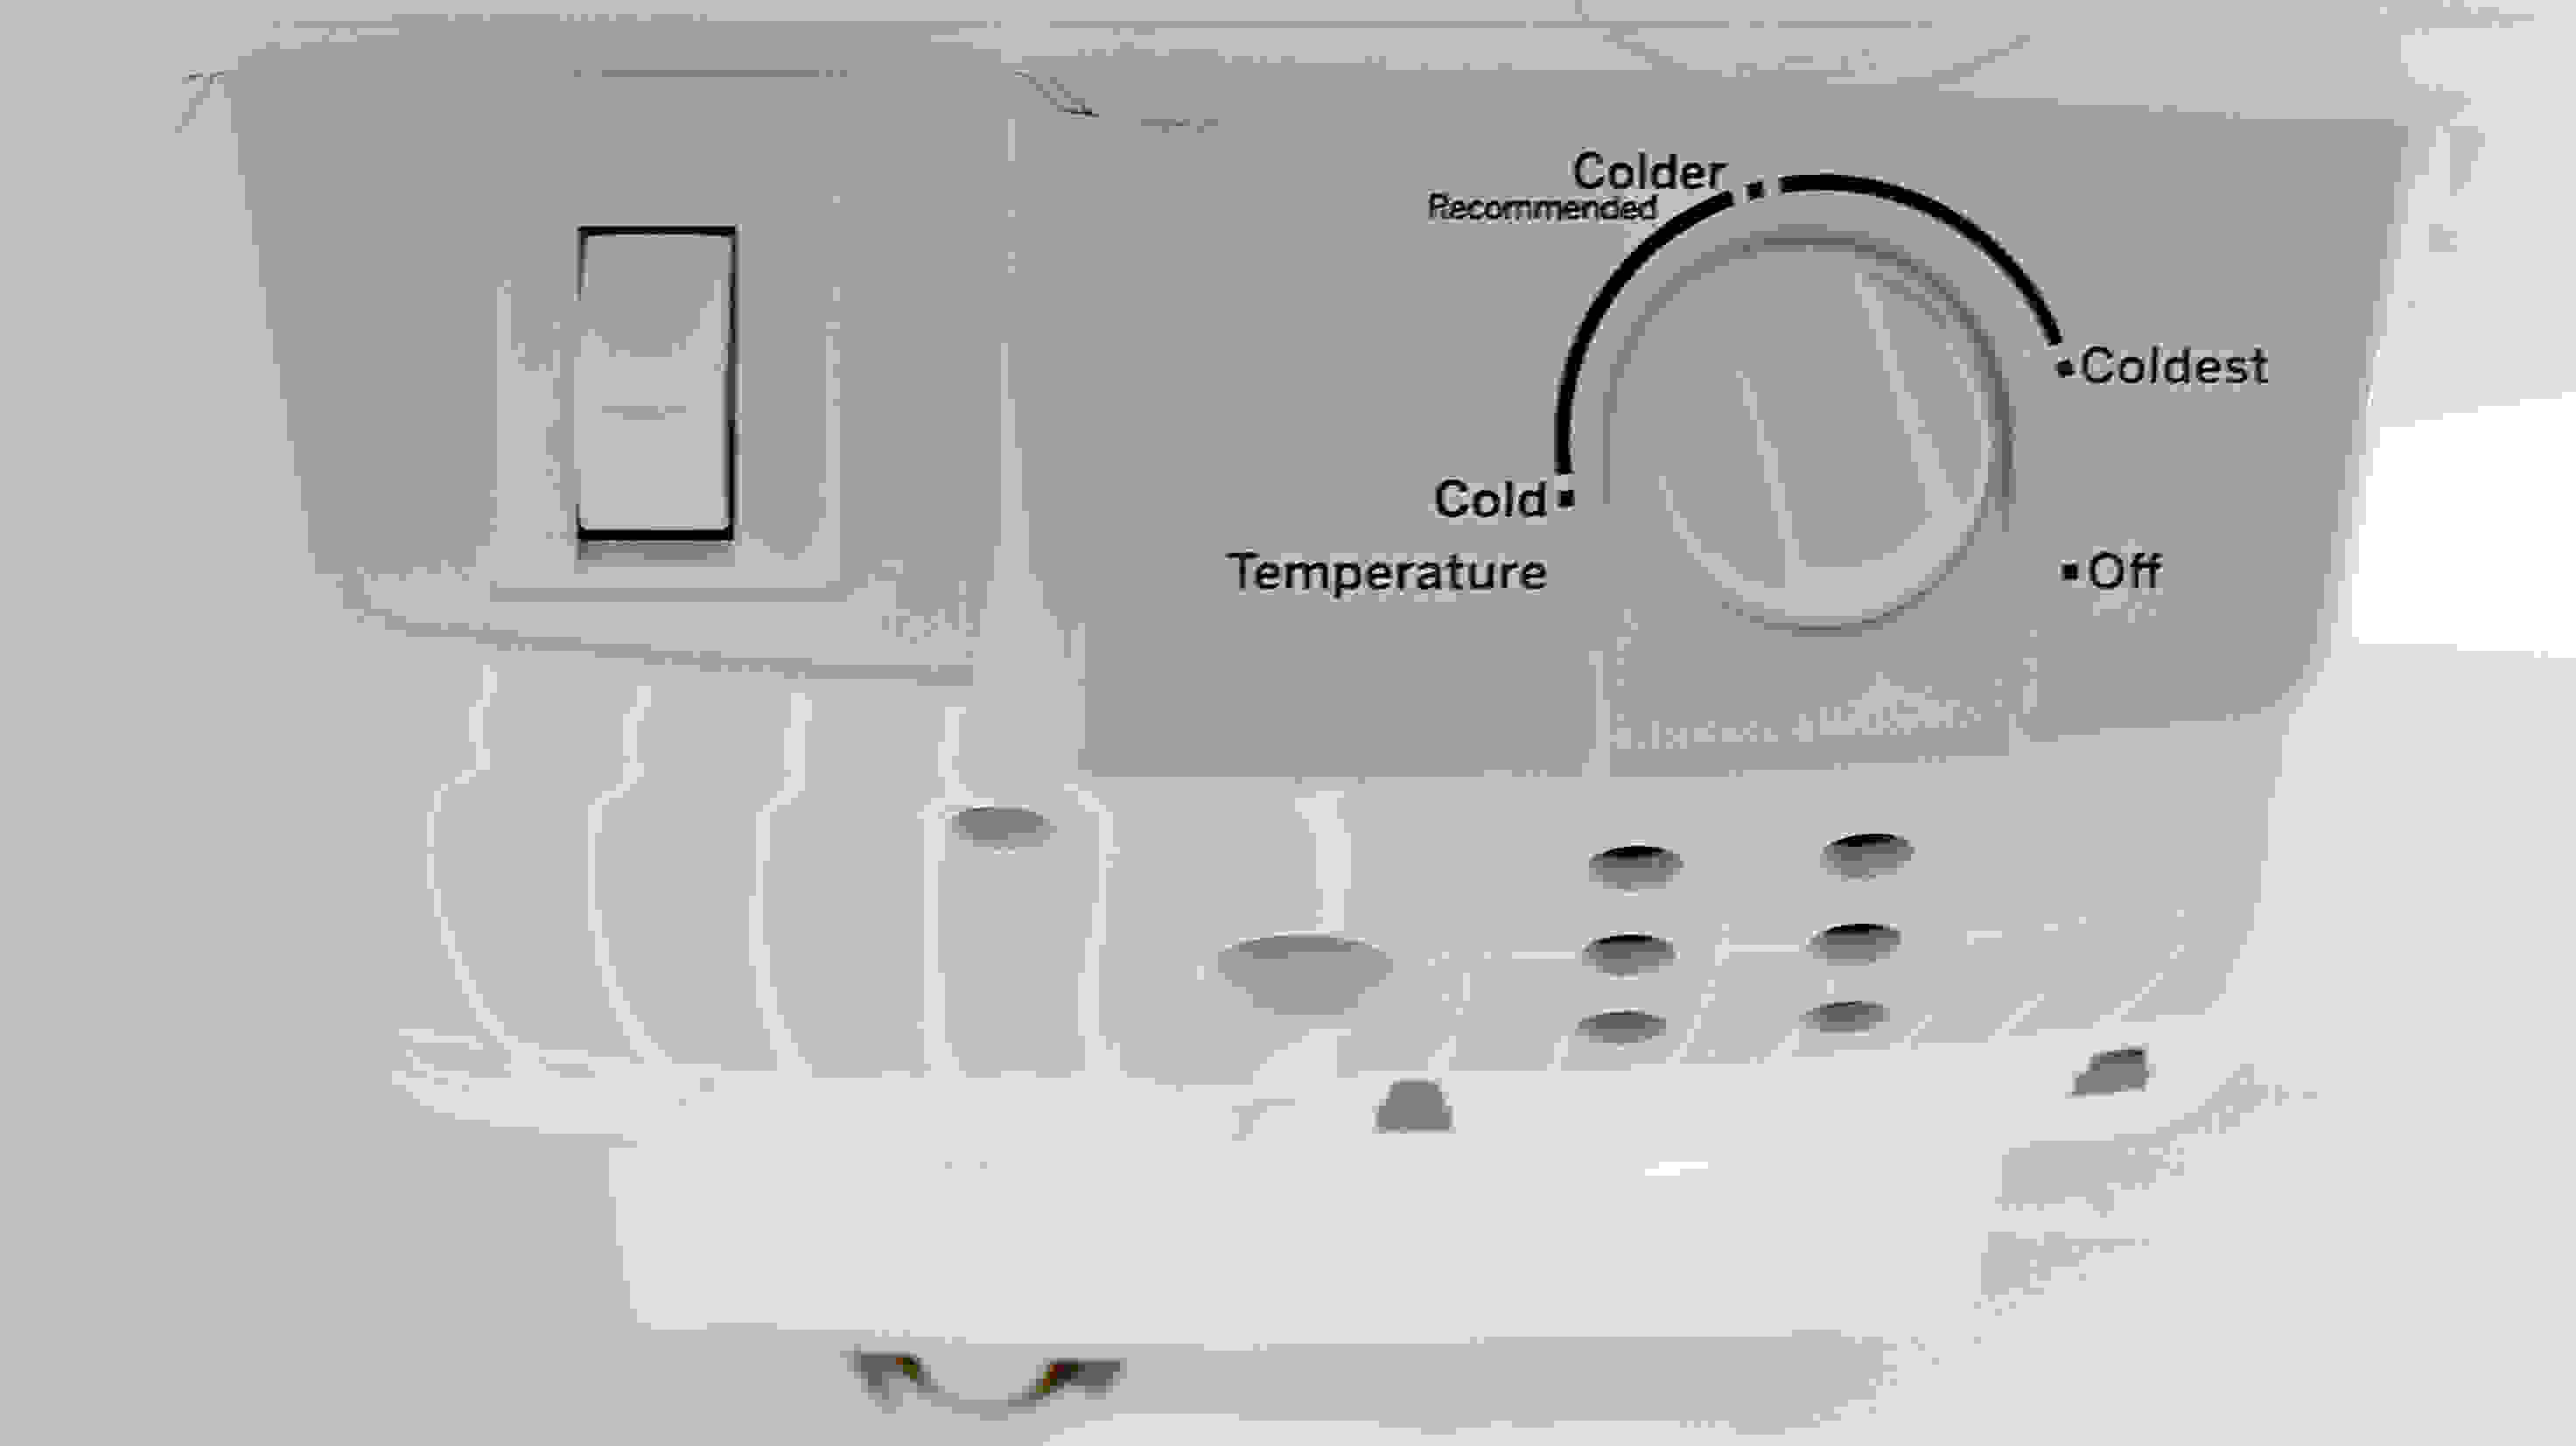 The GE GIE16DGHBB's loose control dial and vague thermostat means you'll want to buy a thermometer for proper fridge calibration.